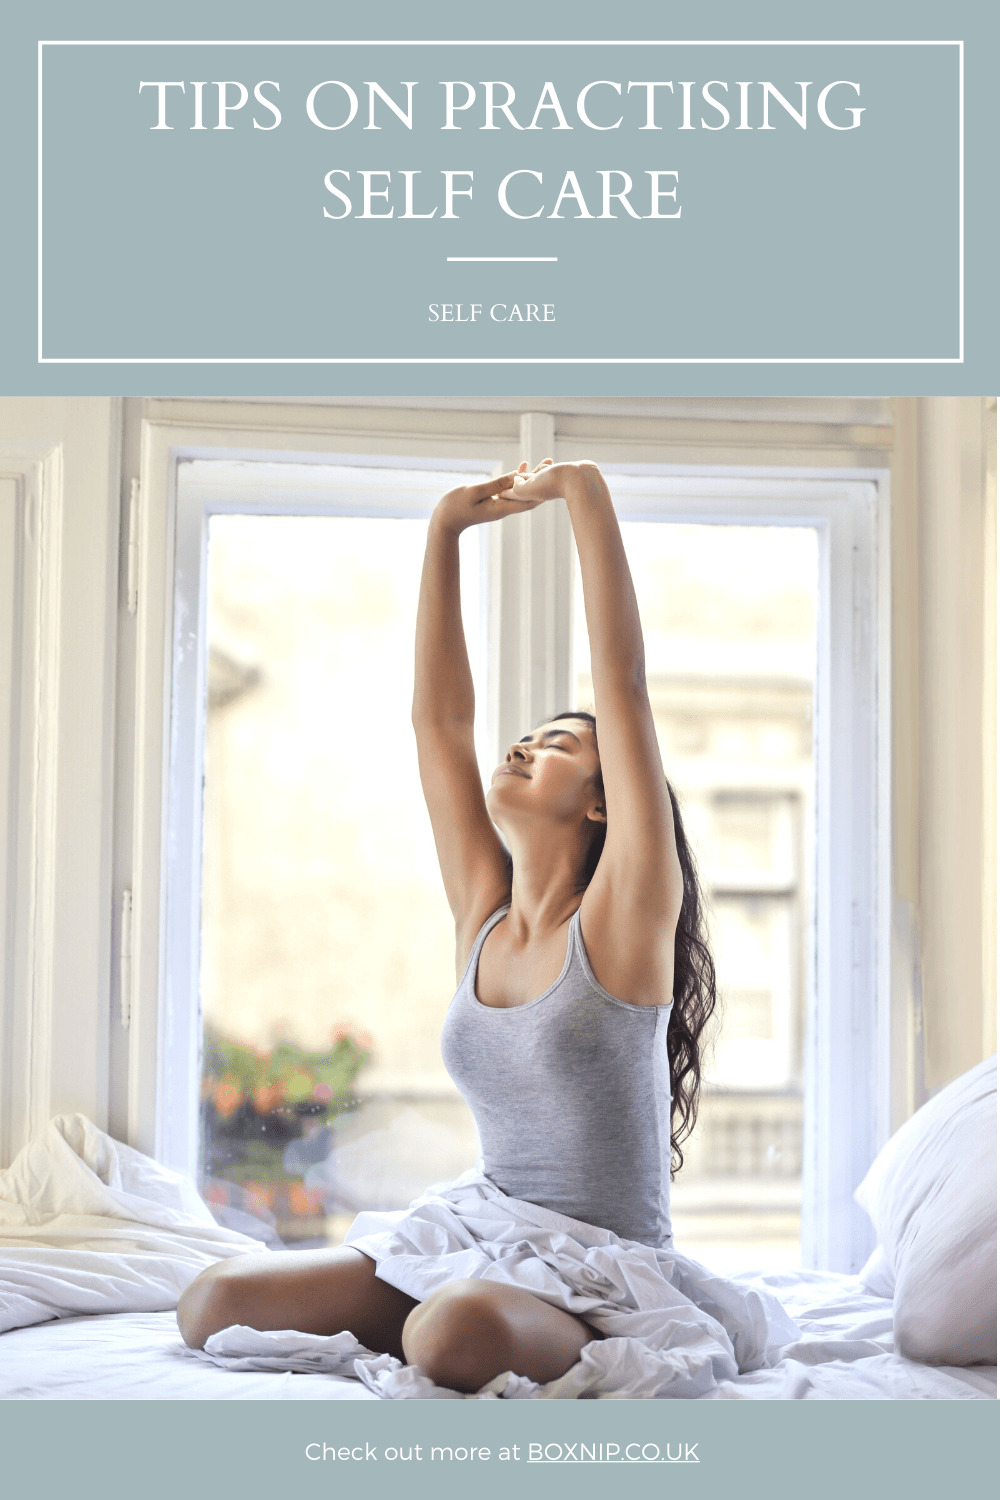 Tips On Practising Self Care - PIN THIS!